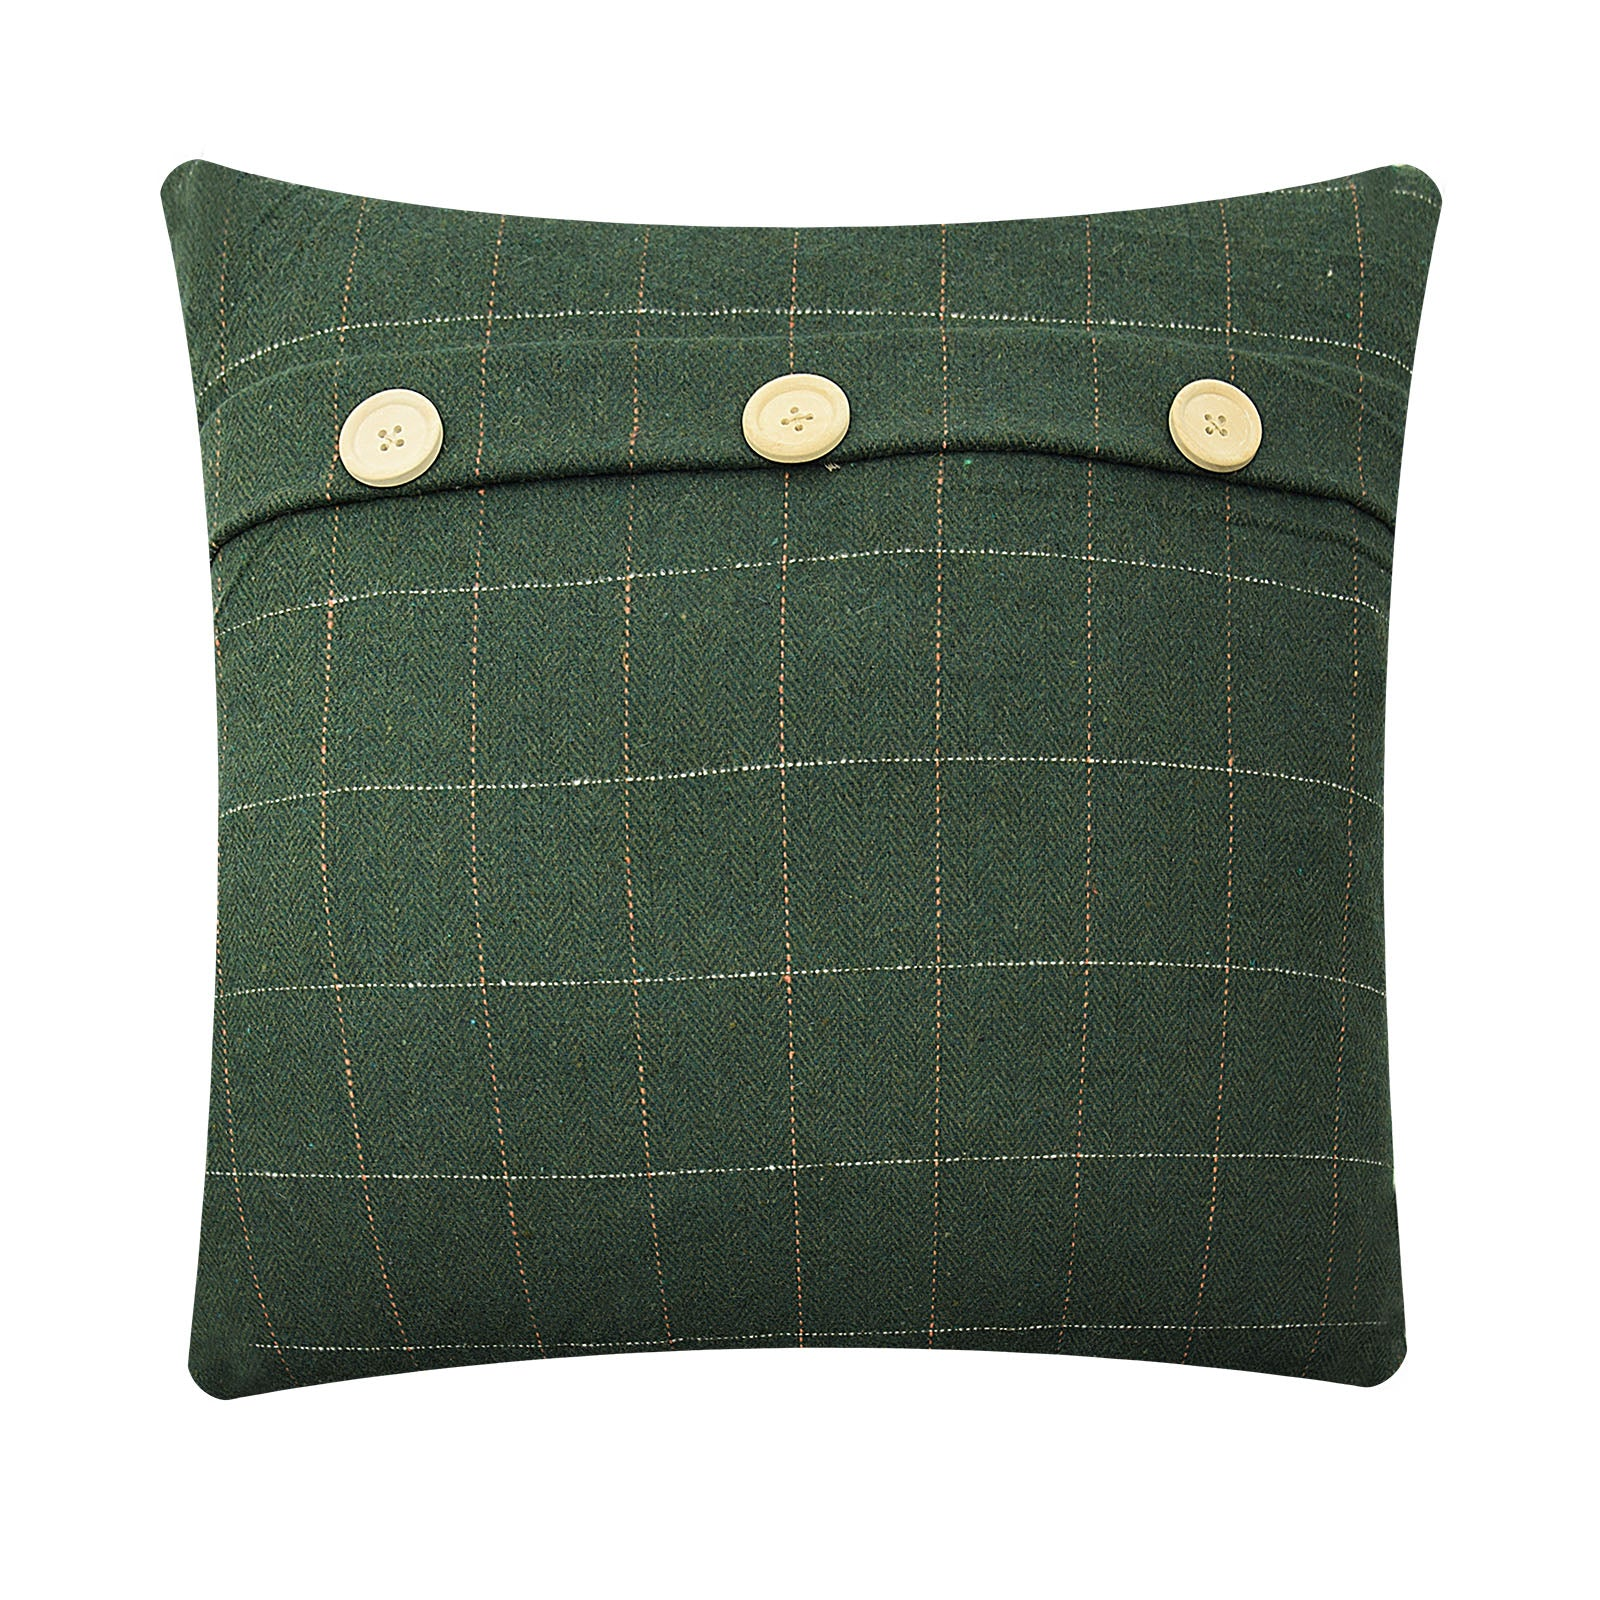 45x45 CM Cushion Cover  1890A-013-Green - ebarza